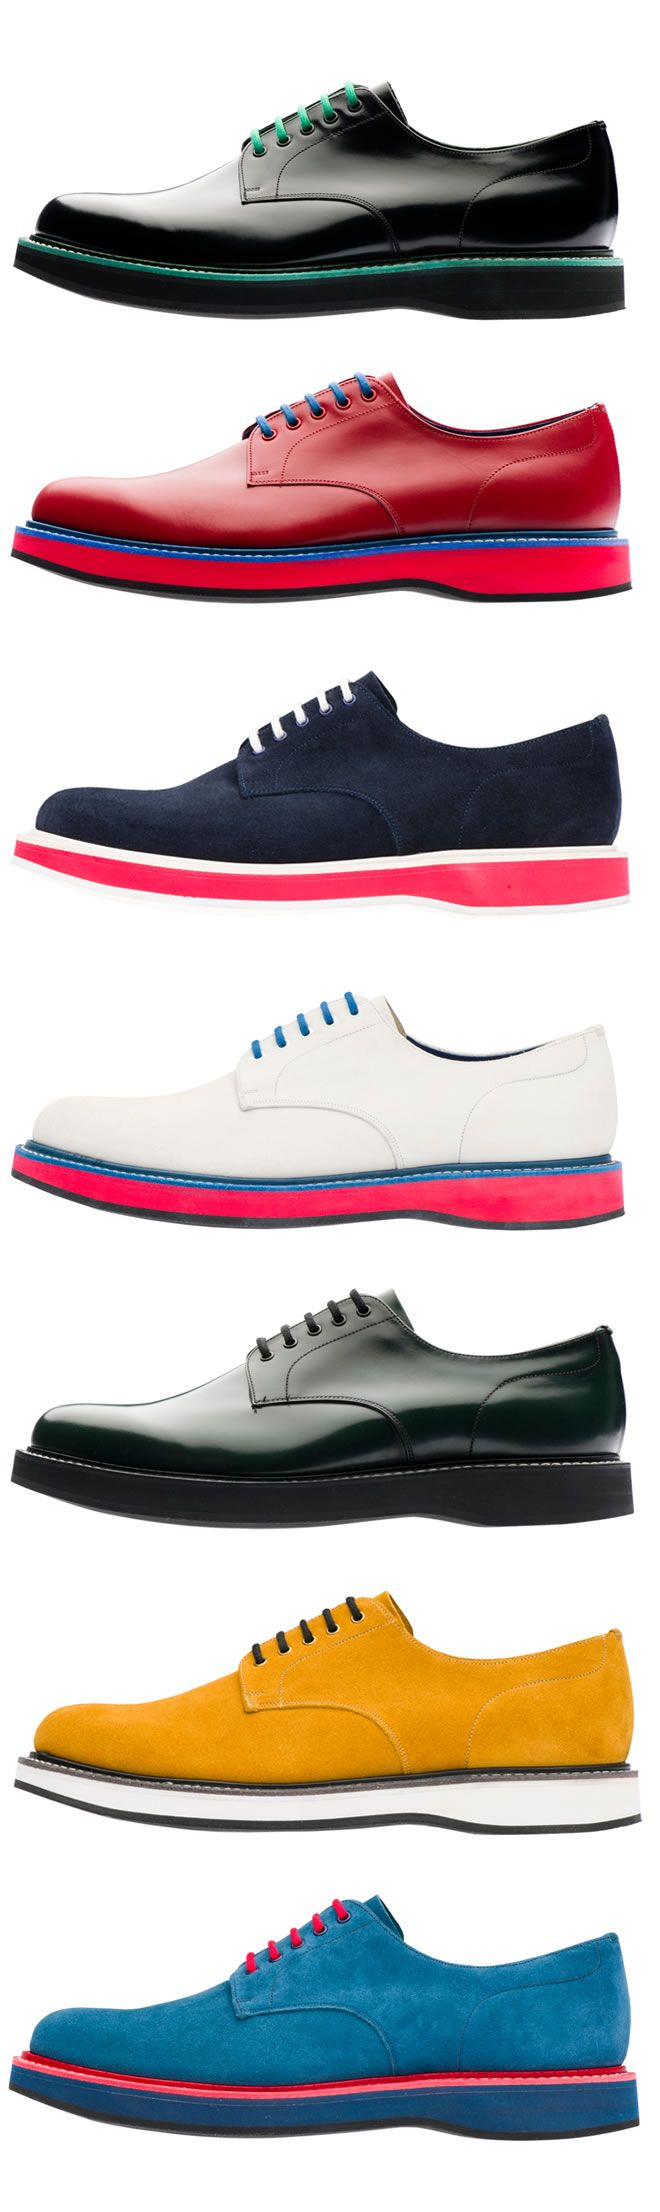 #mens #shoes. You can find more on: http://findanswerhere.com/mensshoes